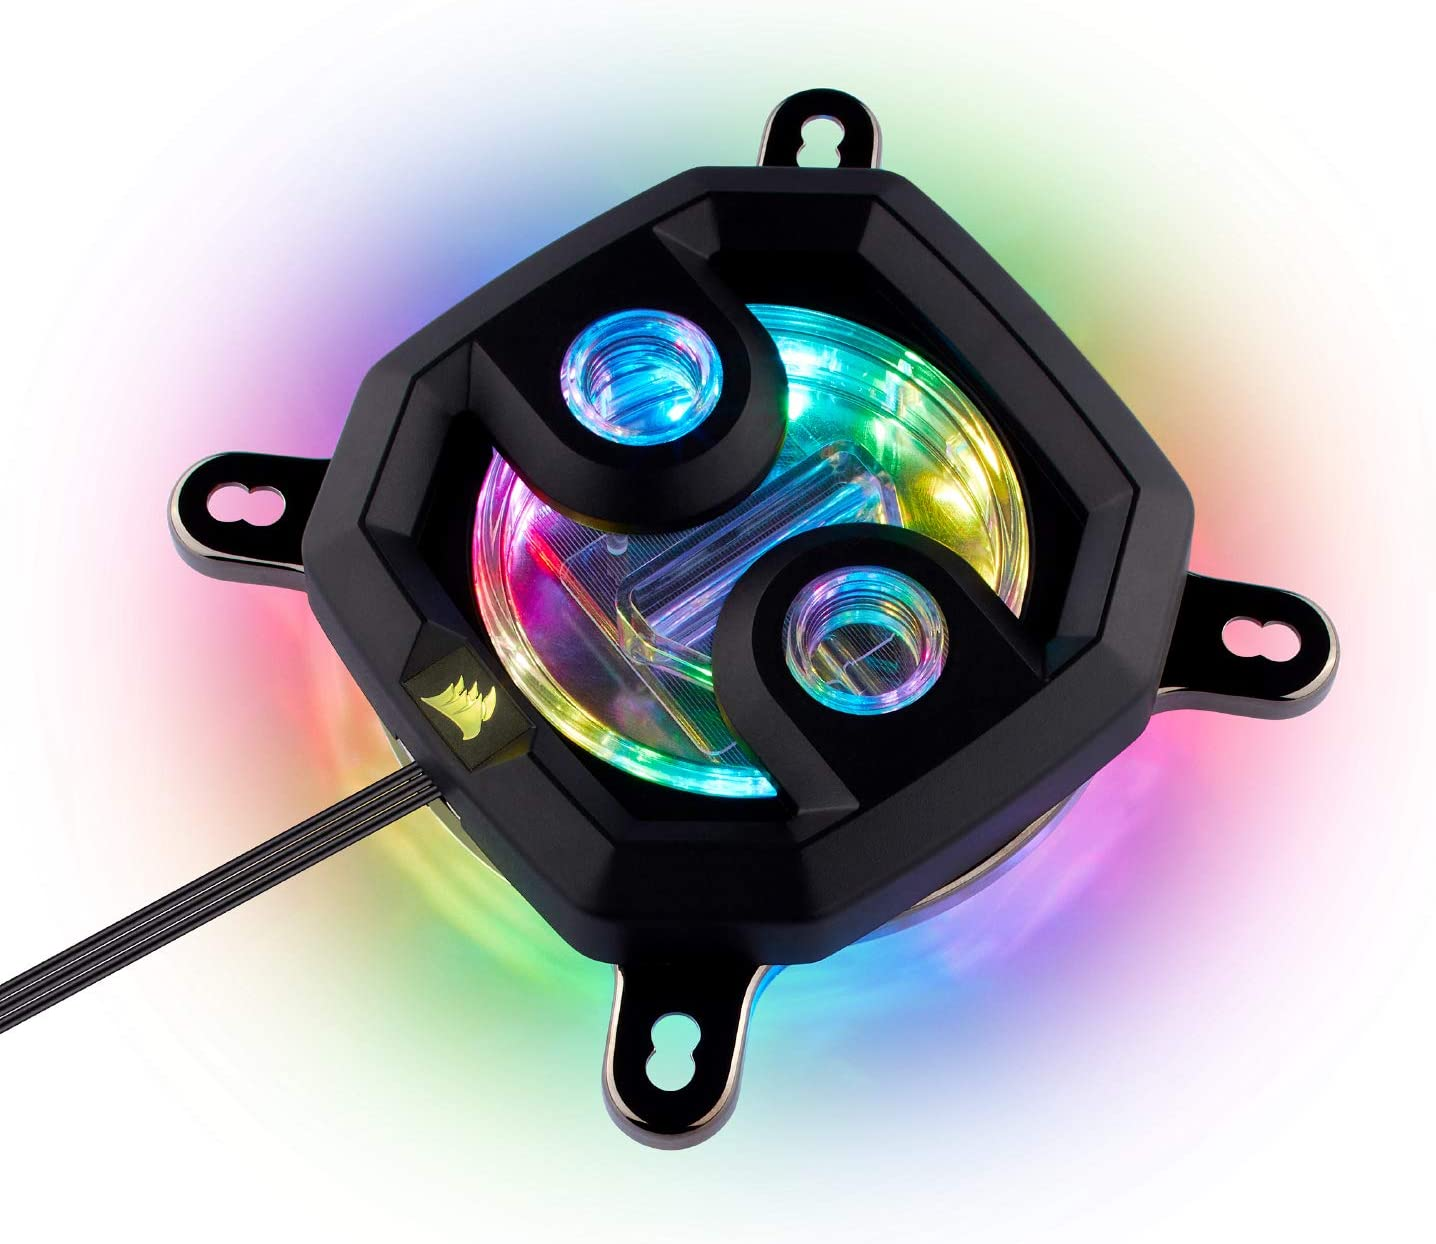 Corsair Hydro X Series, XC7 RGB CPU Water Block,16 Individually addressable RGB LEDs,Software-Enabled, 1200/AM4